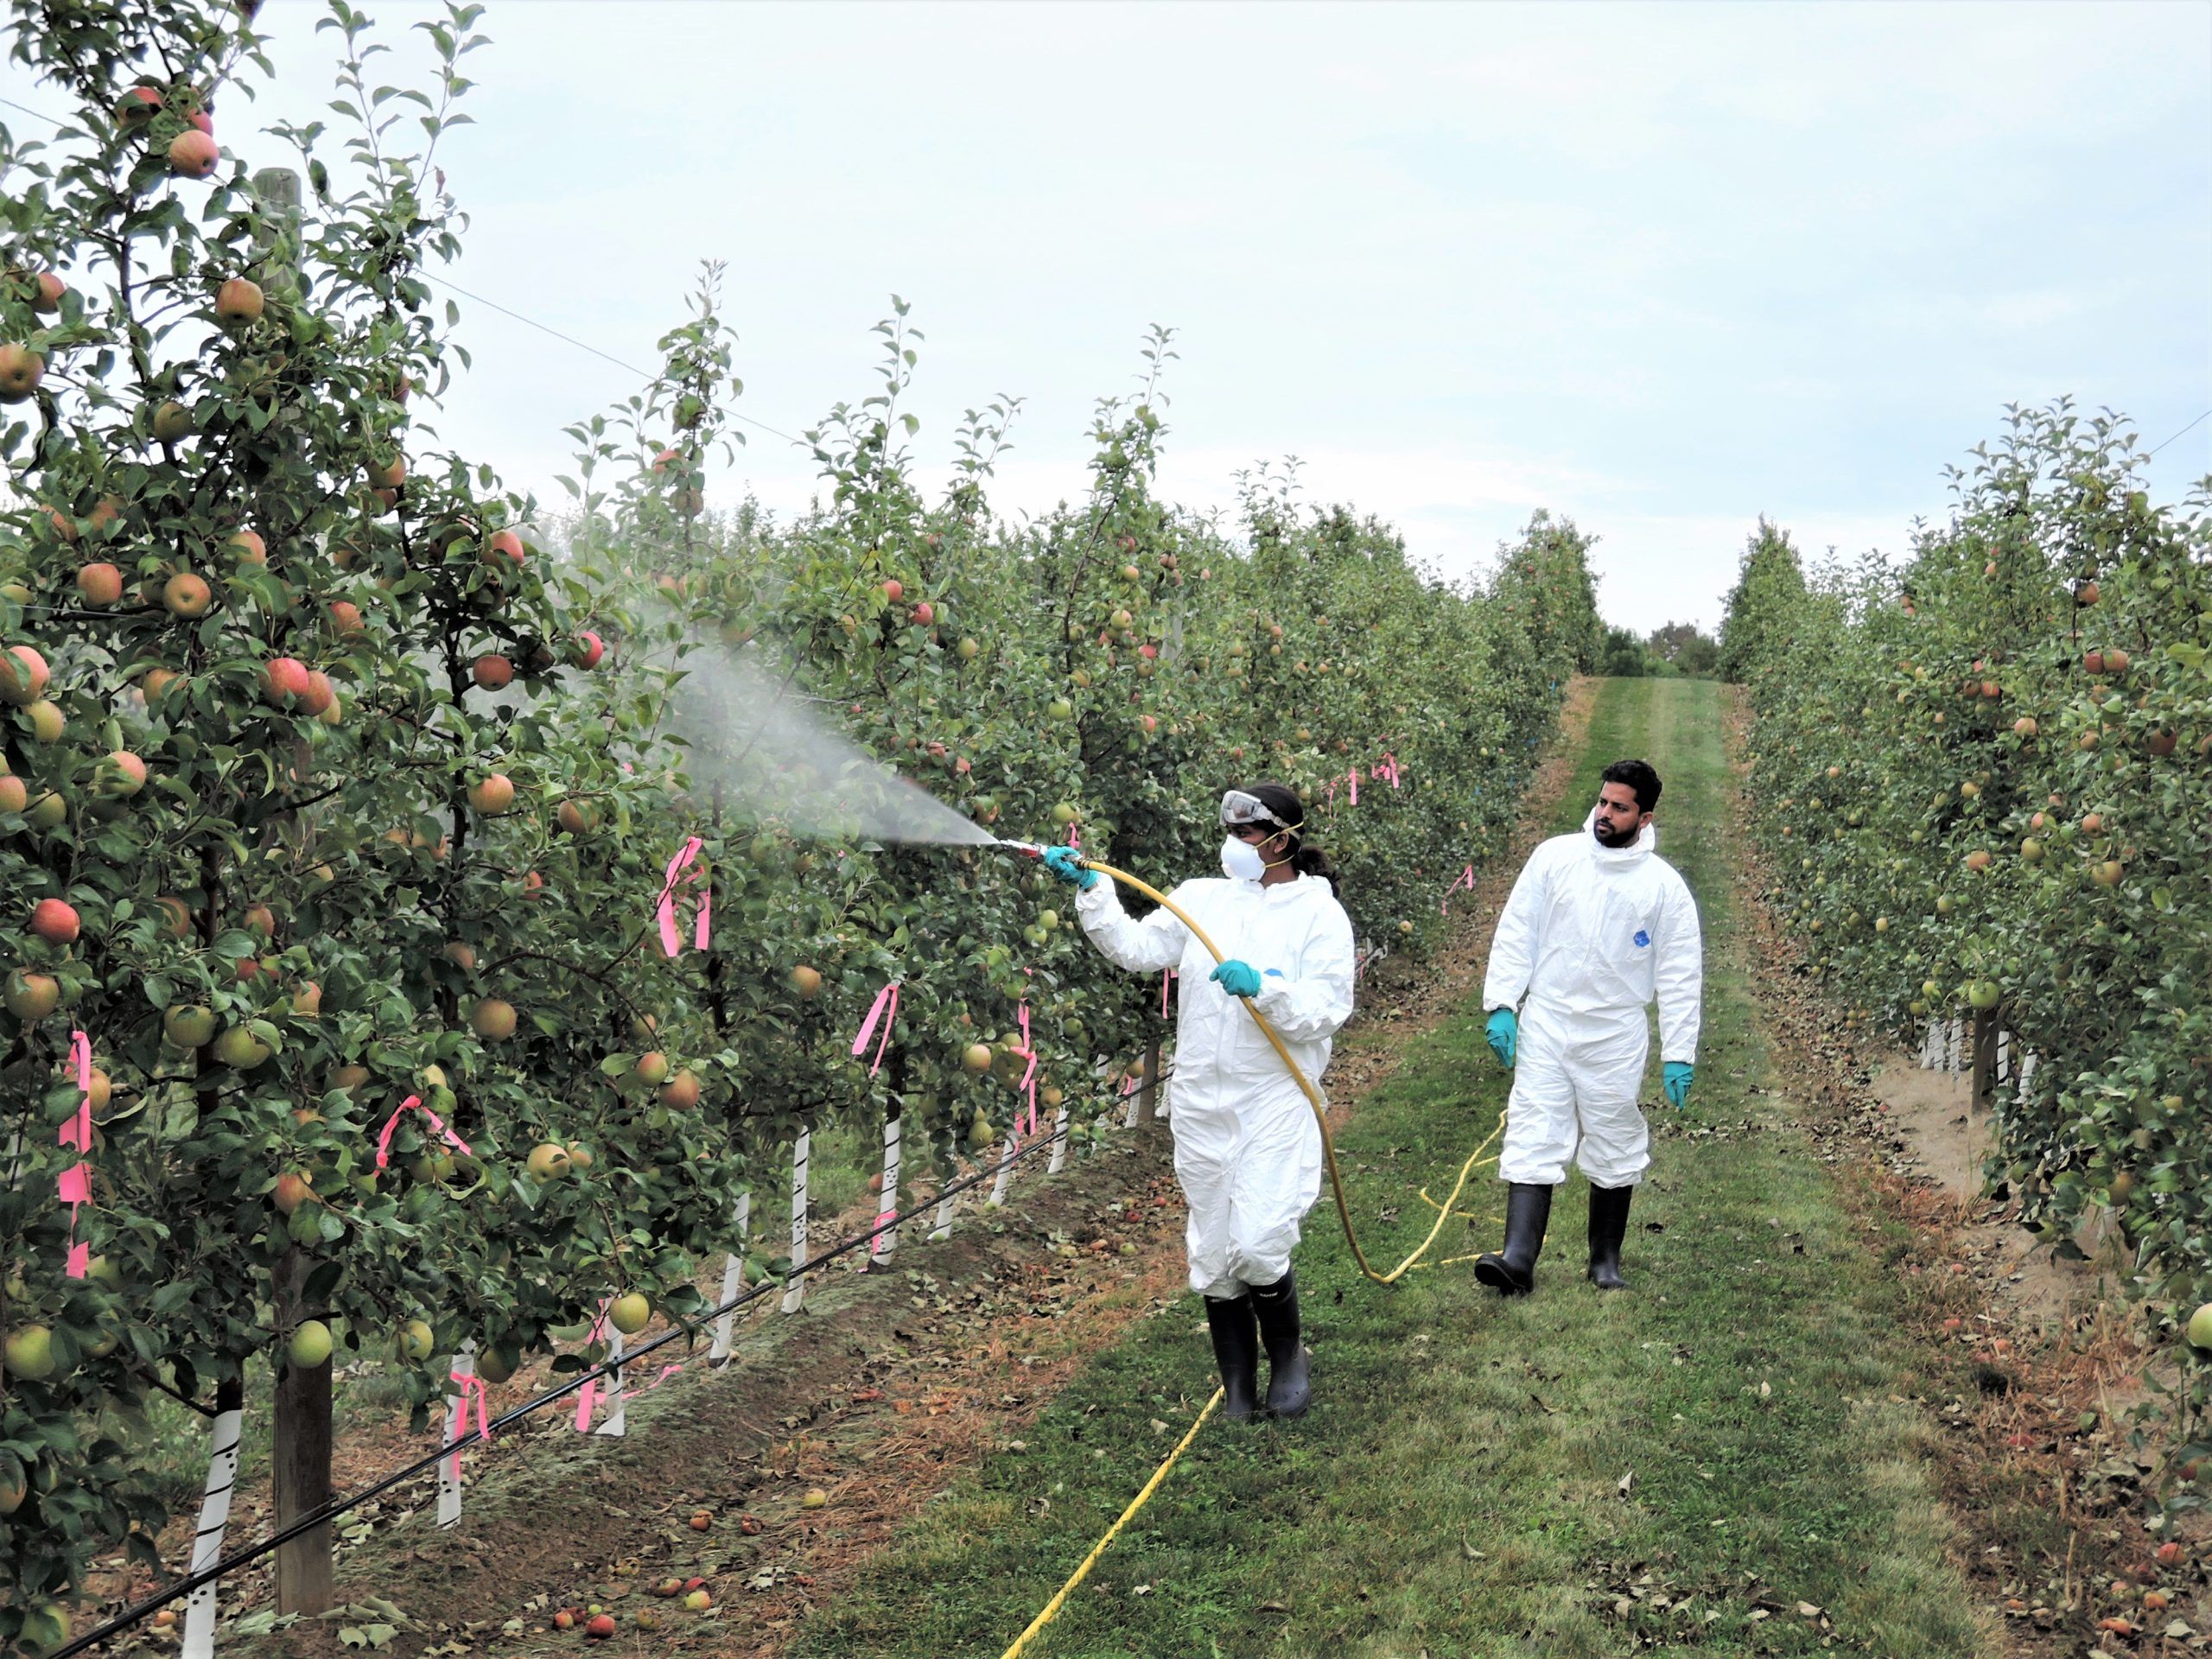 Karthika and assistant spray hexanal in an apple orchard.